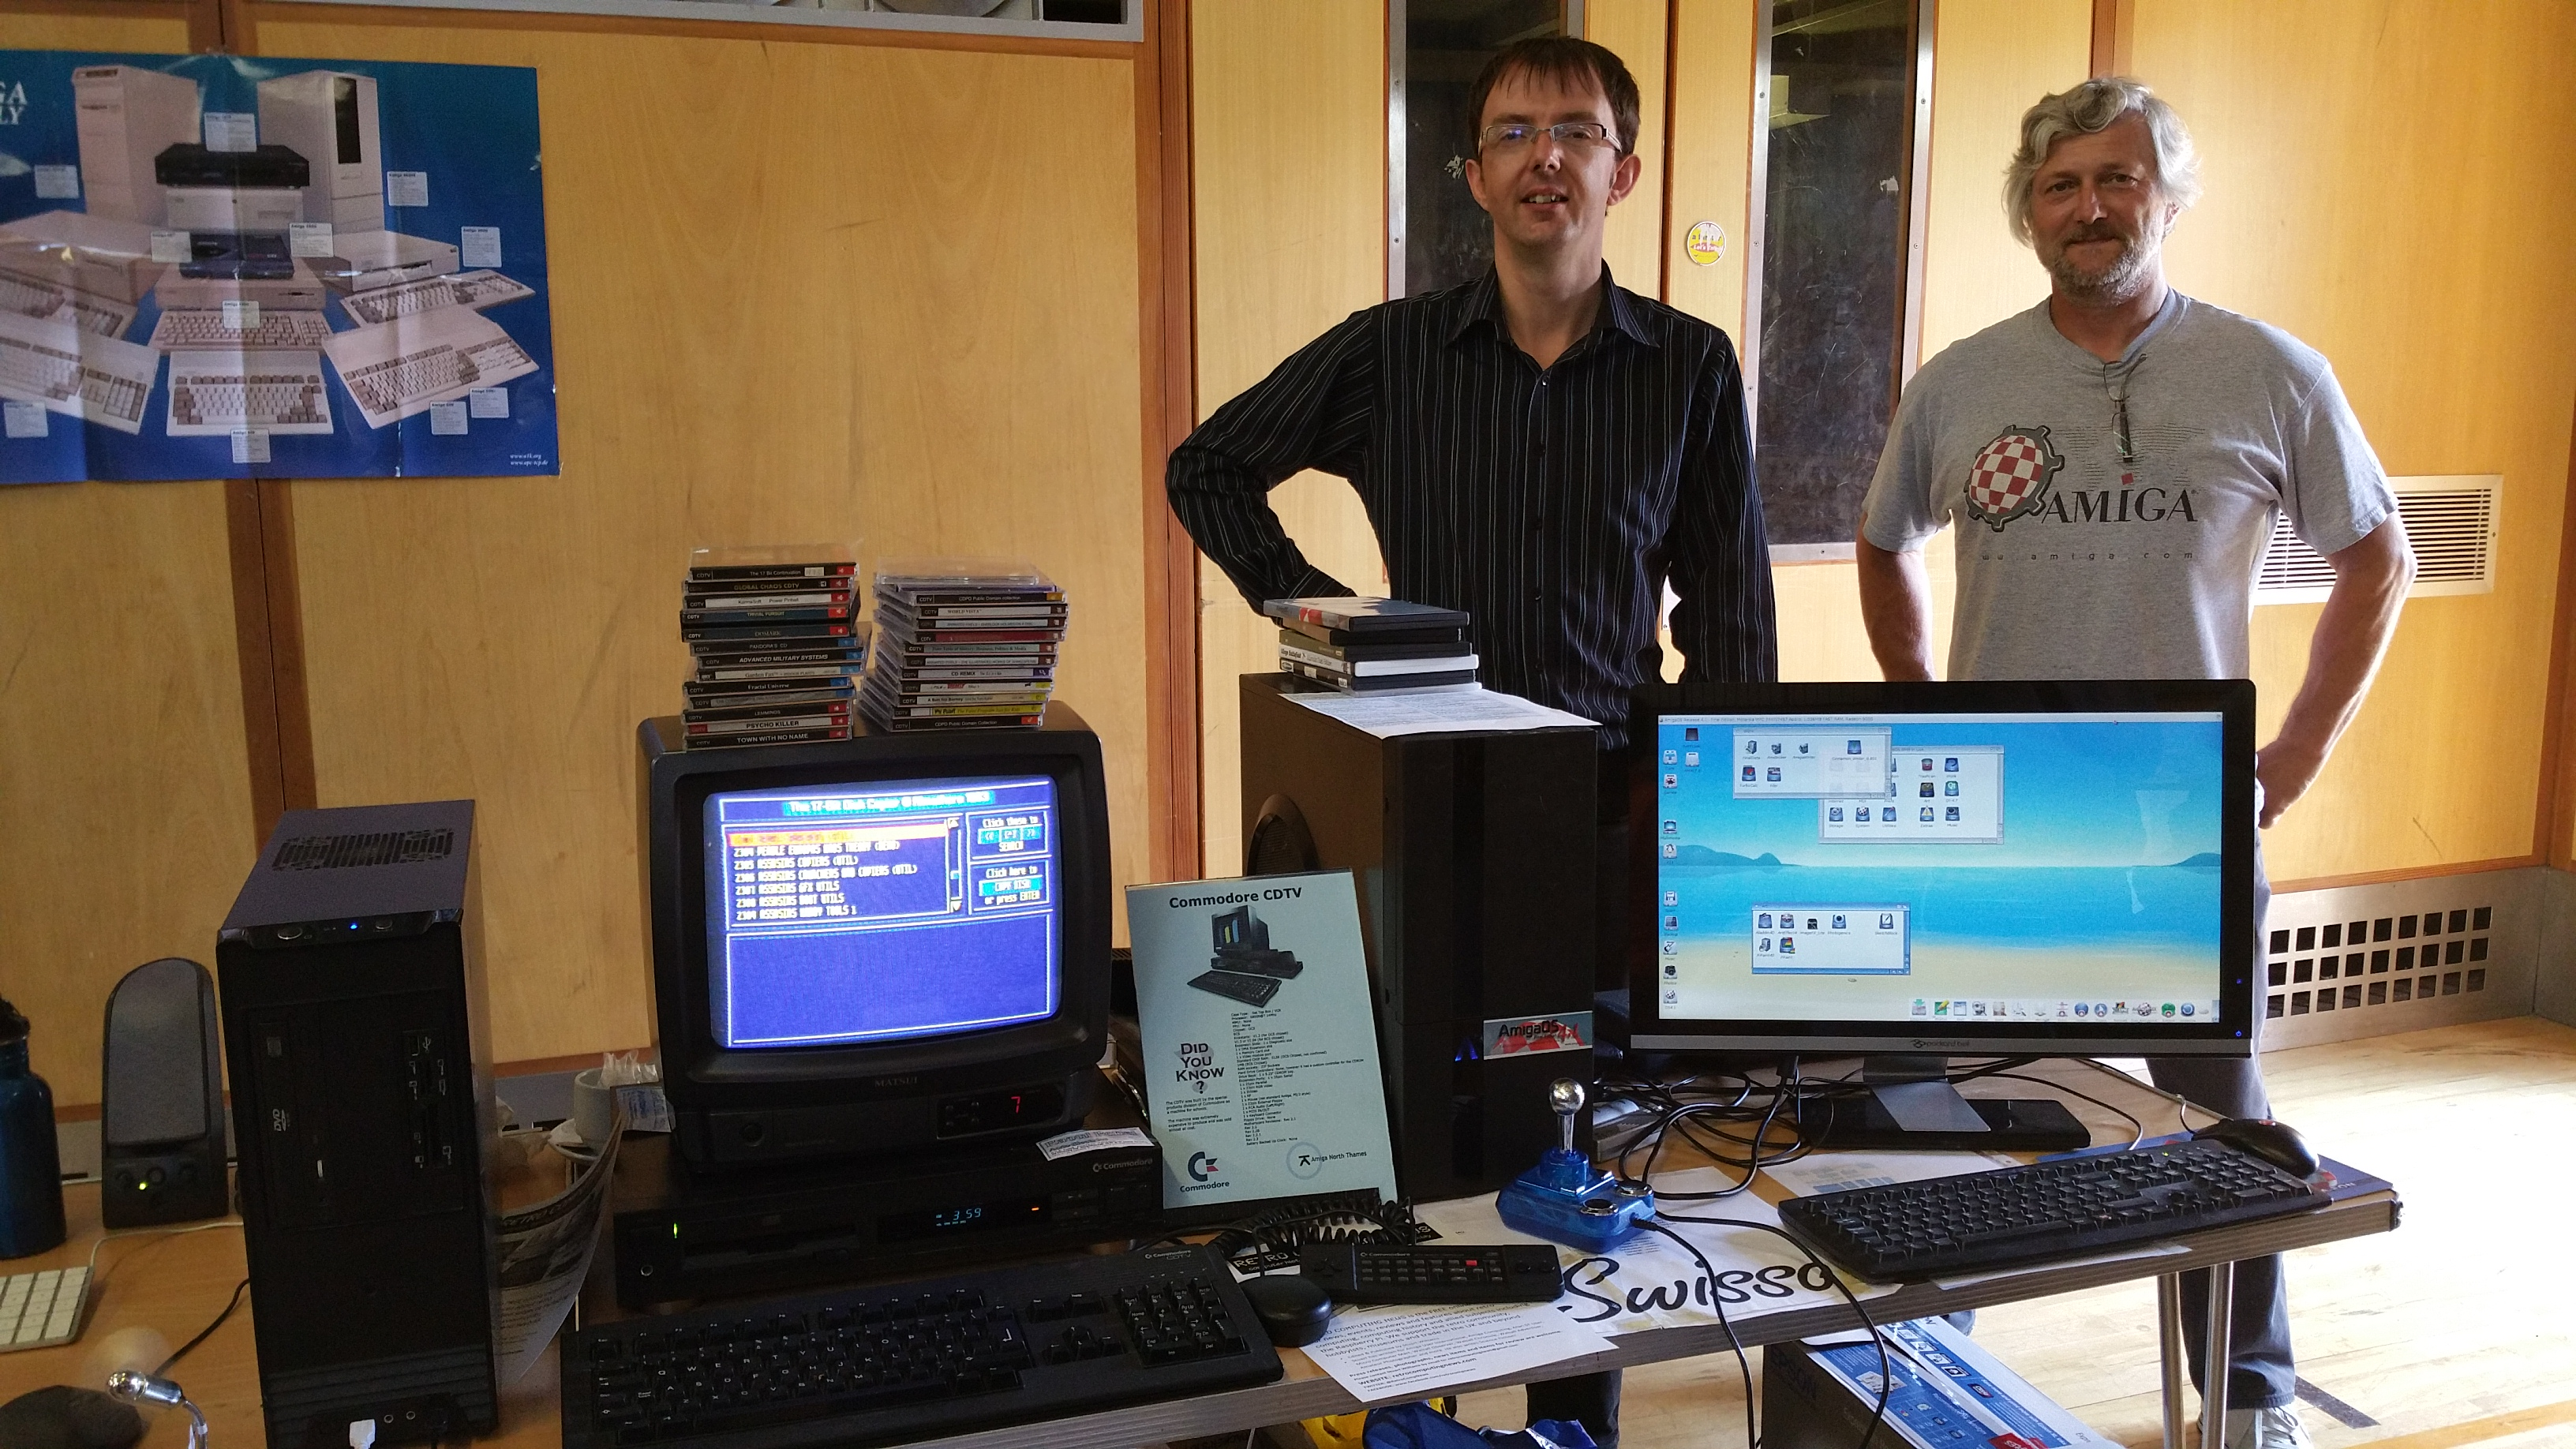 The guys from Amiga North Thames user group were exhibiting seriously  high-end post-